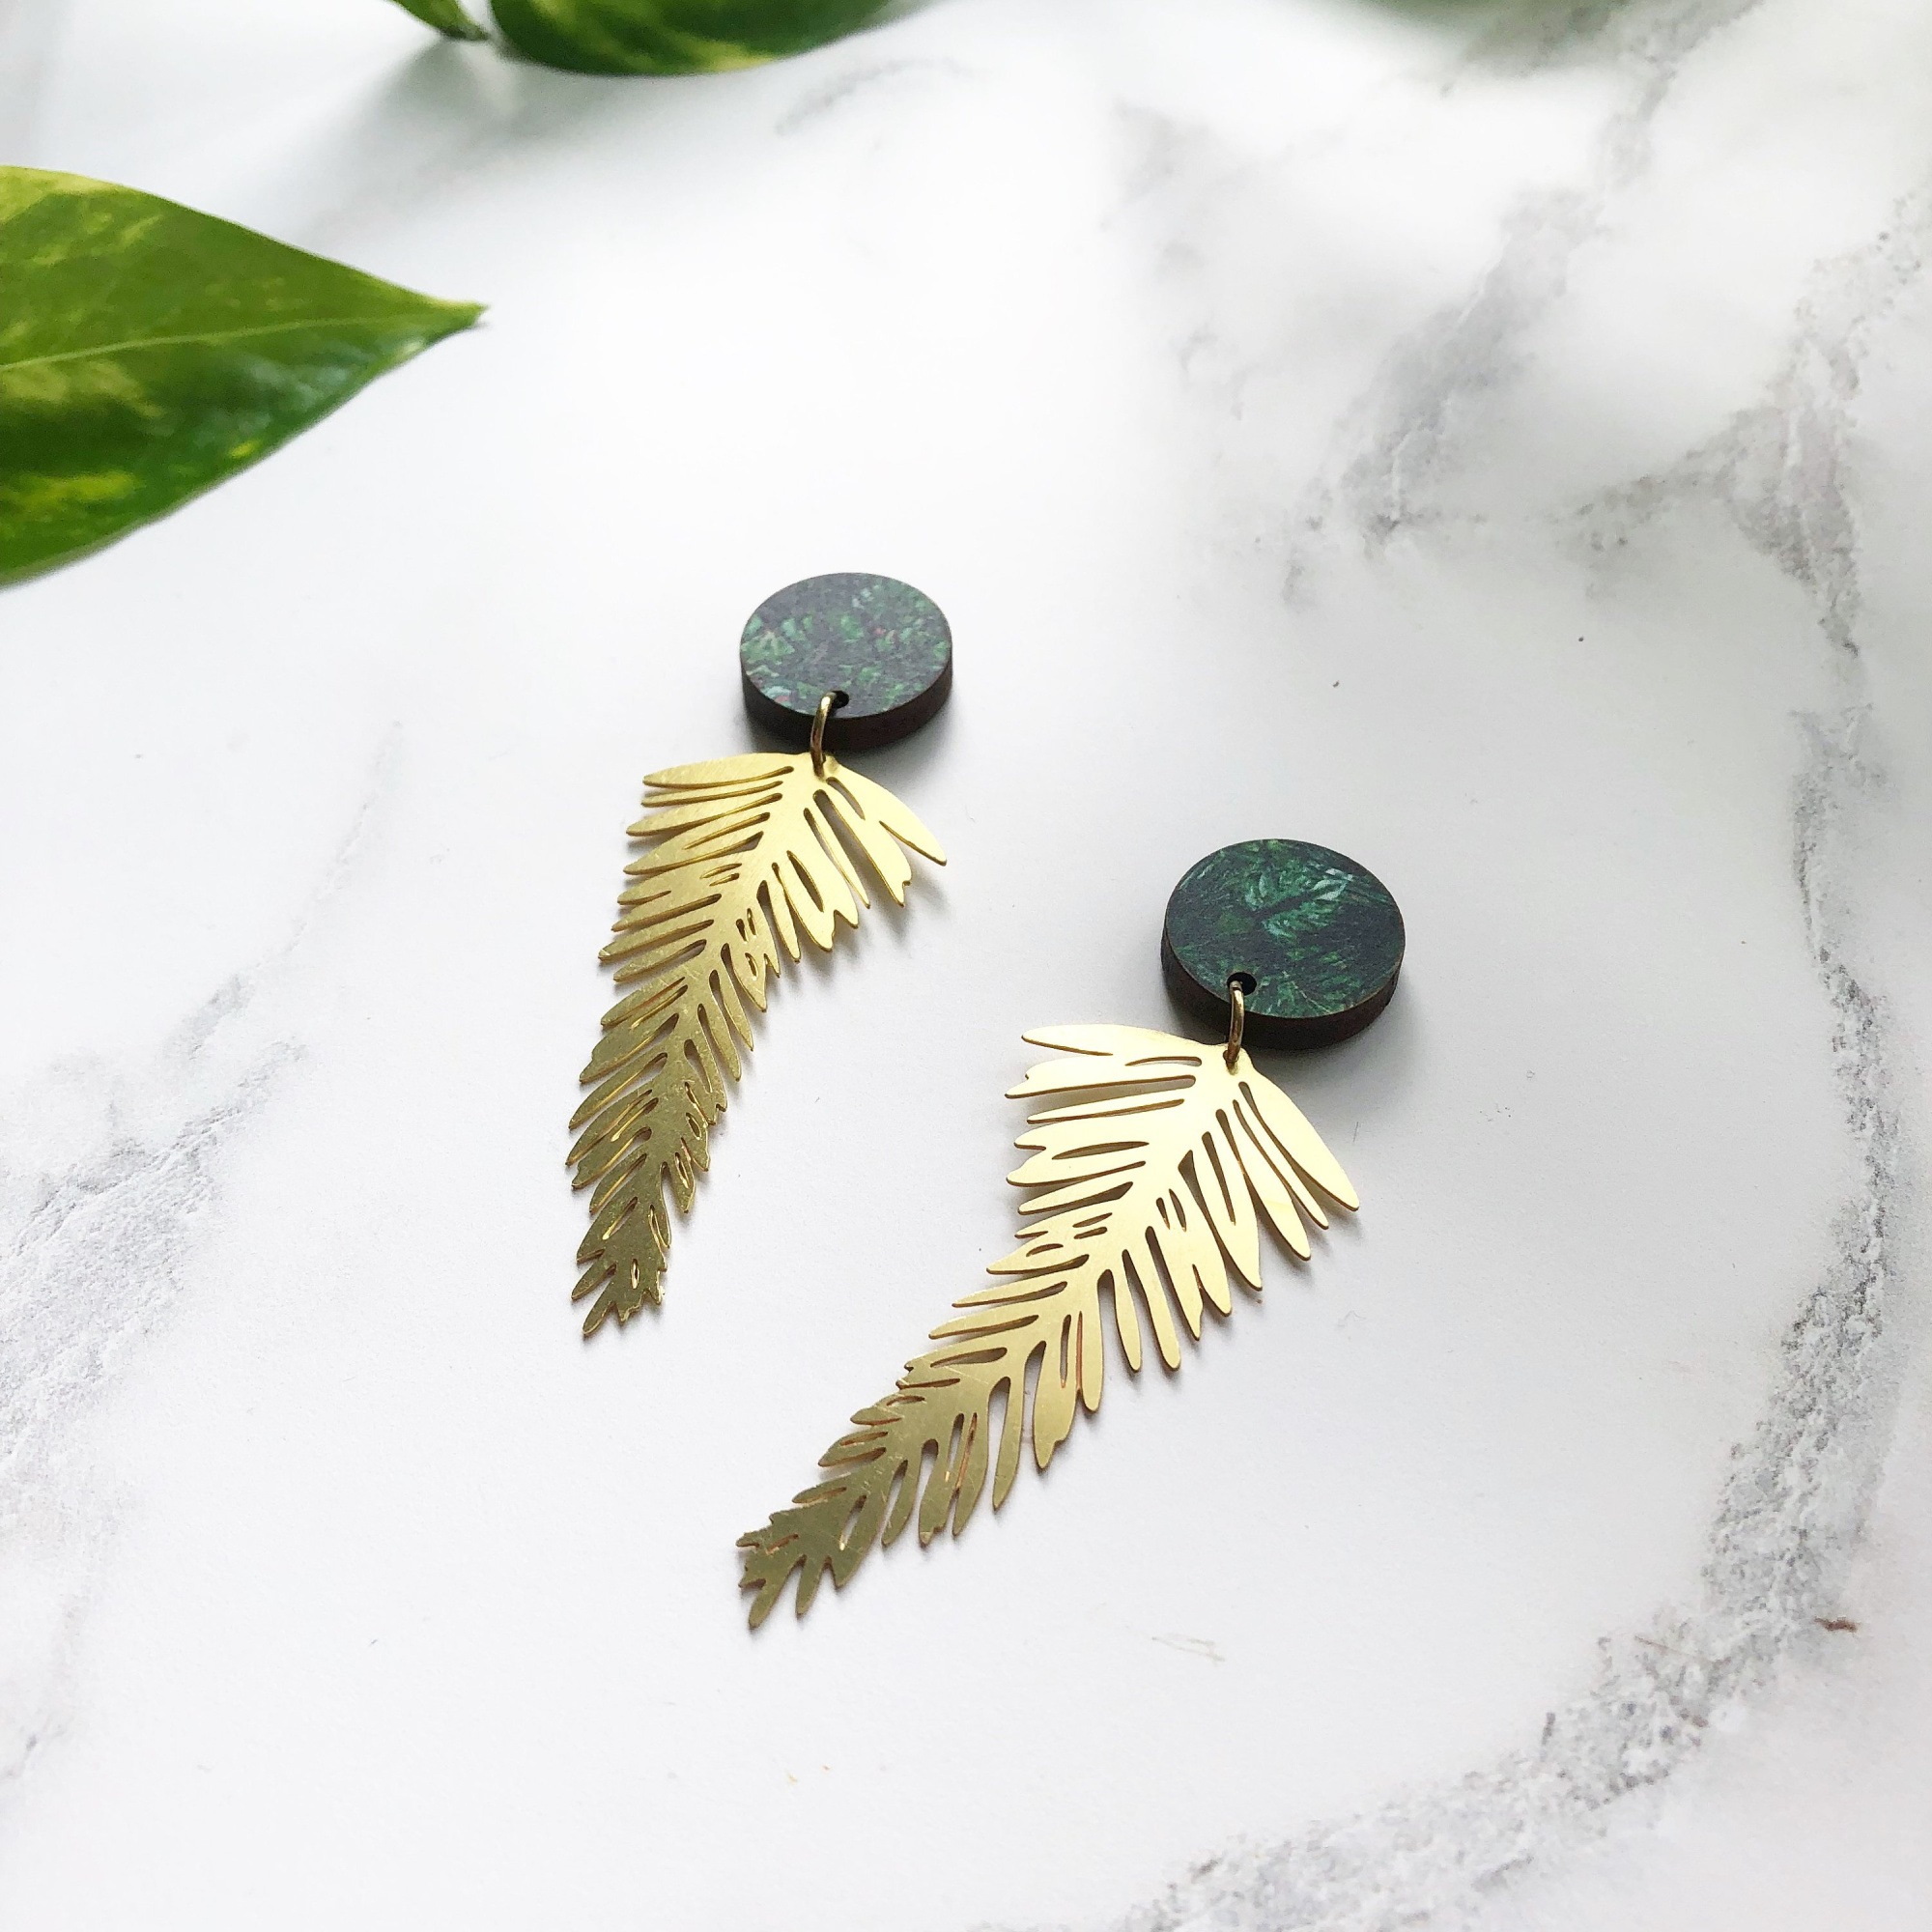 Palm Leaf Earrings by Mica Peet